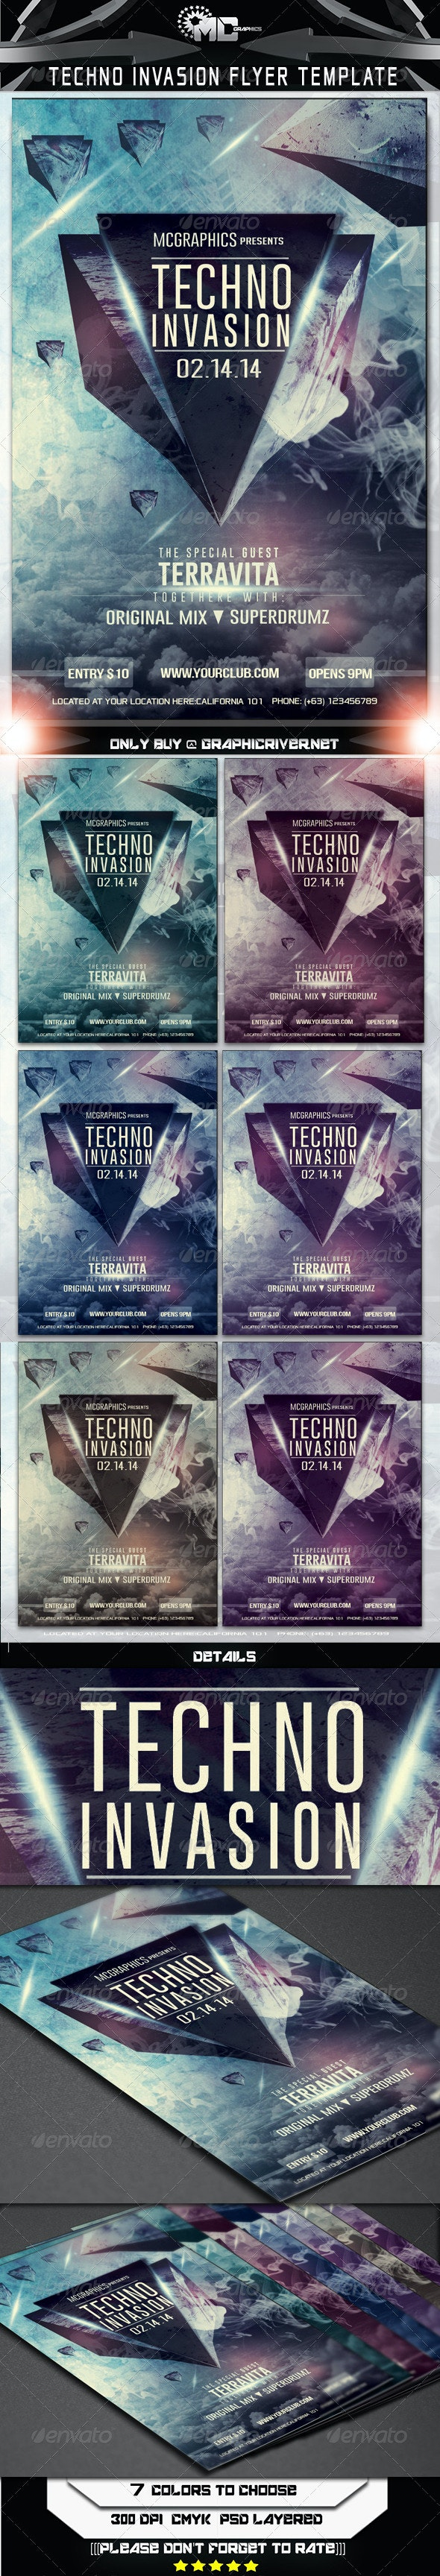 Techno Invasion Flyer Template - Flyers Print Templates